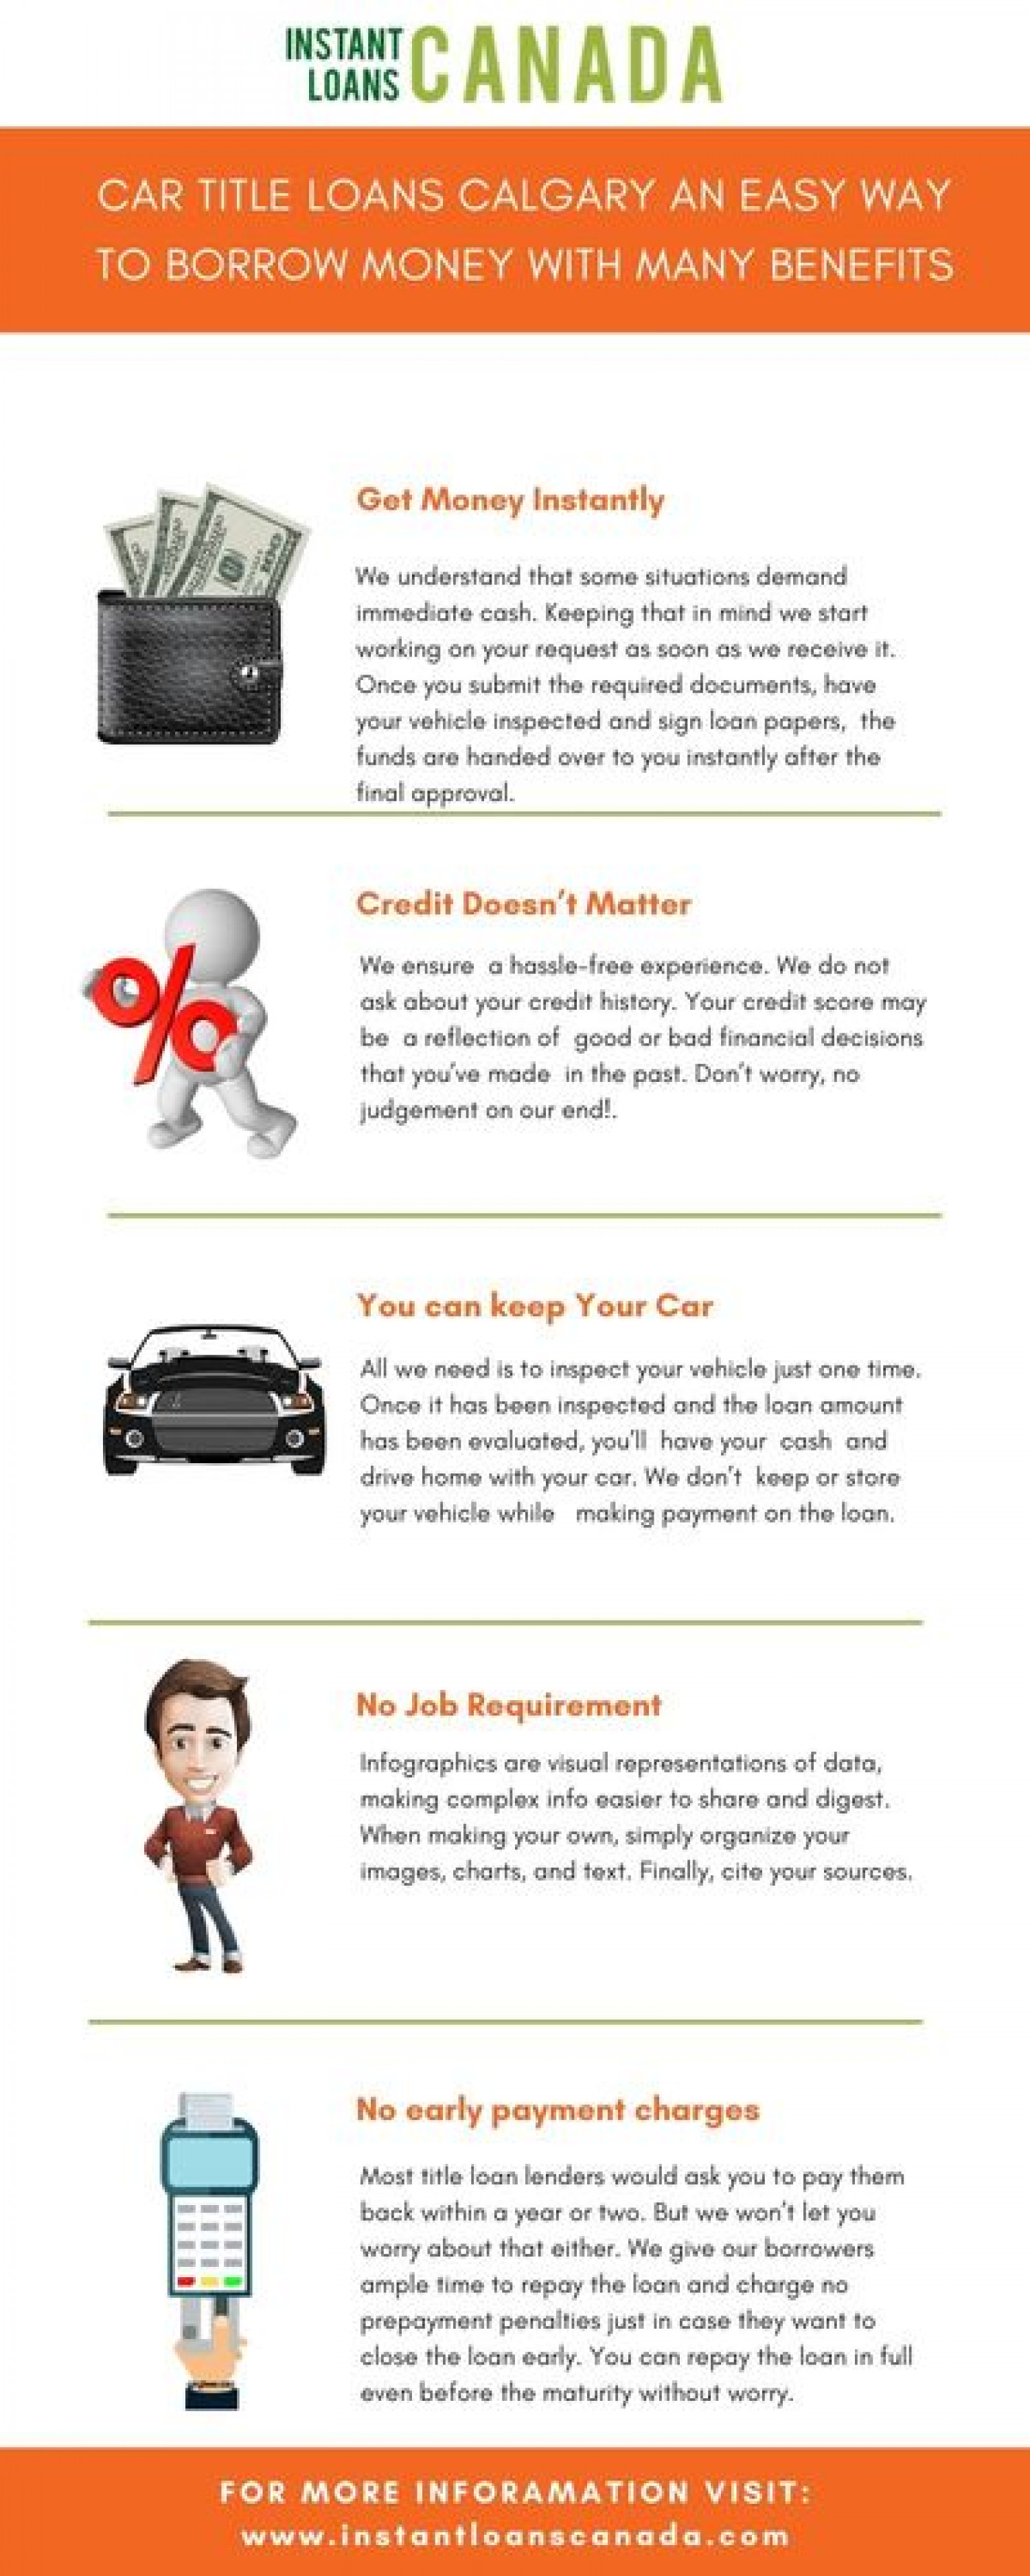 Benefits of getting Car Title Loans in Calgary  Infographic